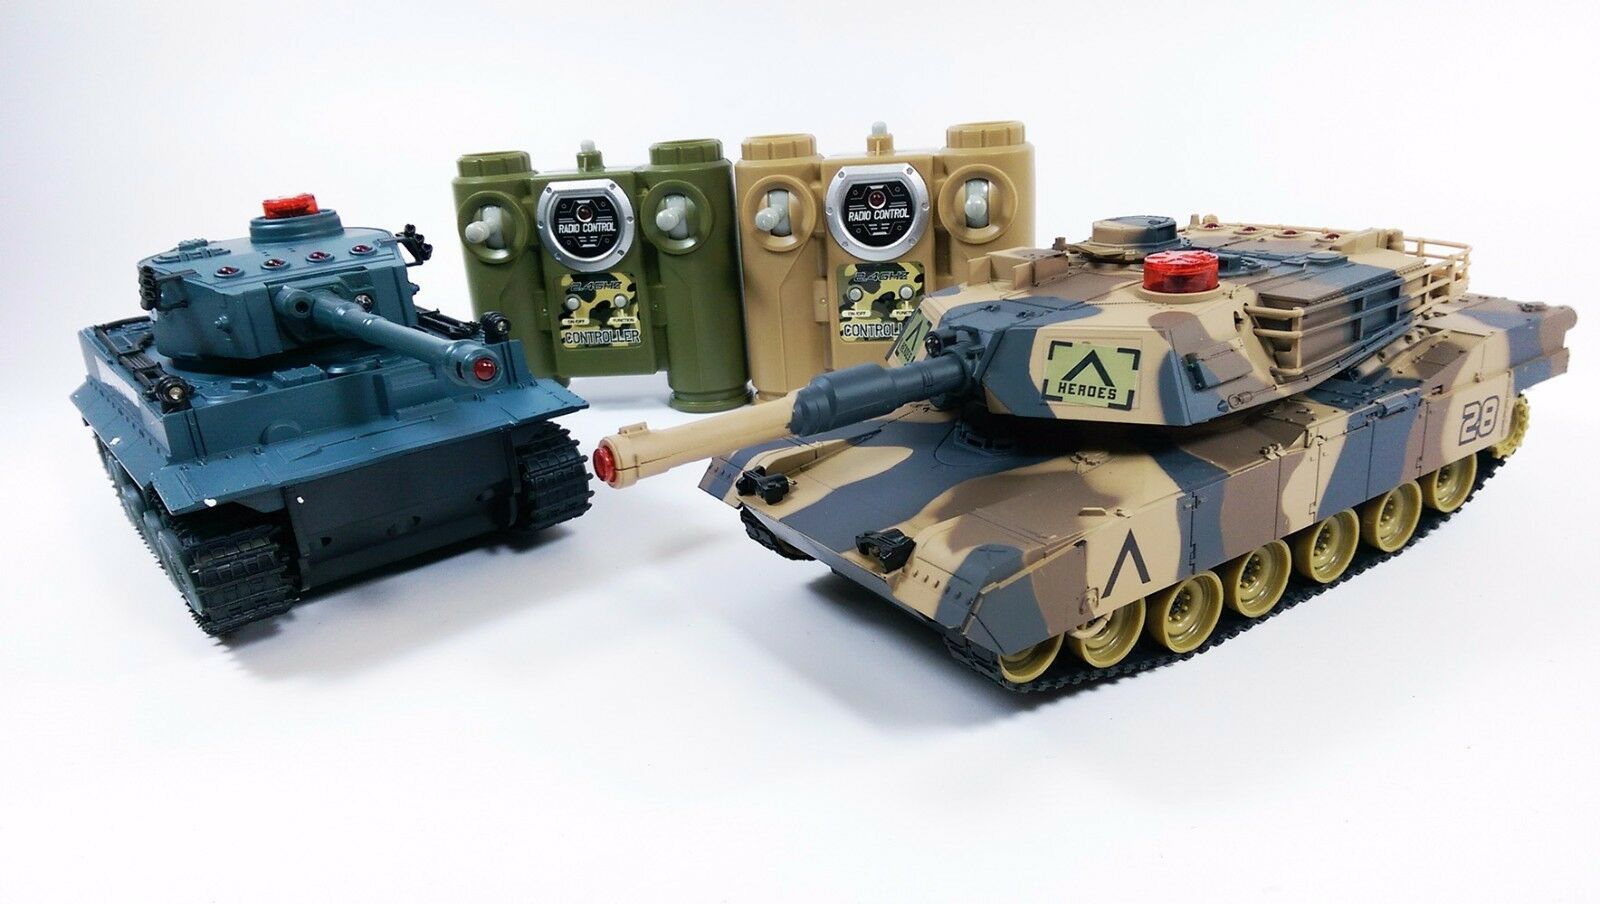 UK HEAVY LARGE INTERACTIVE TWIN BATTLE TANK CAR RC RADIO REMOTE CONTROL 2 PLAYER